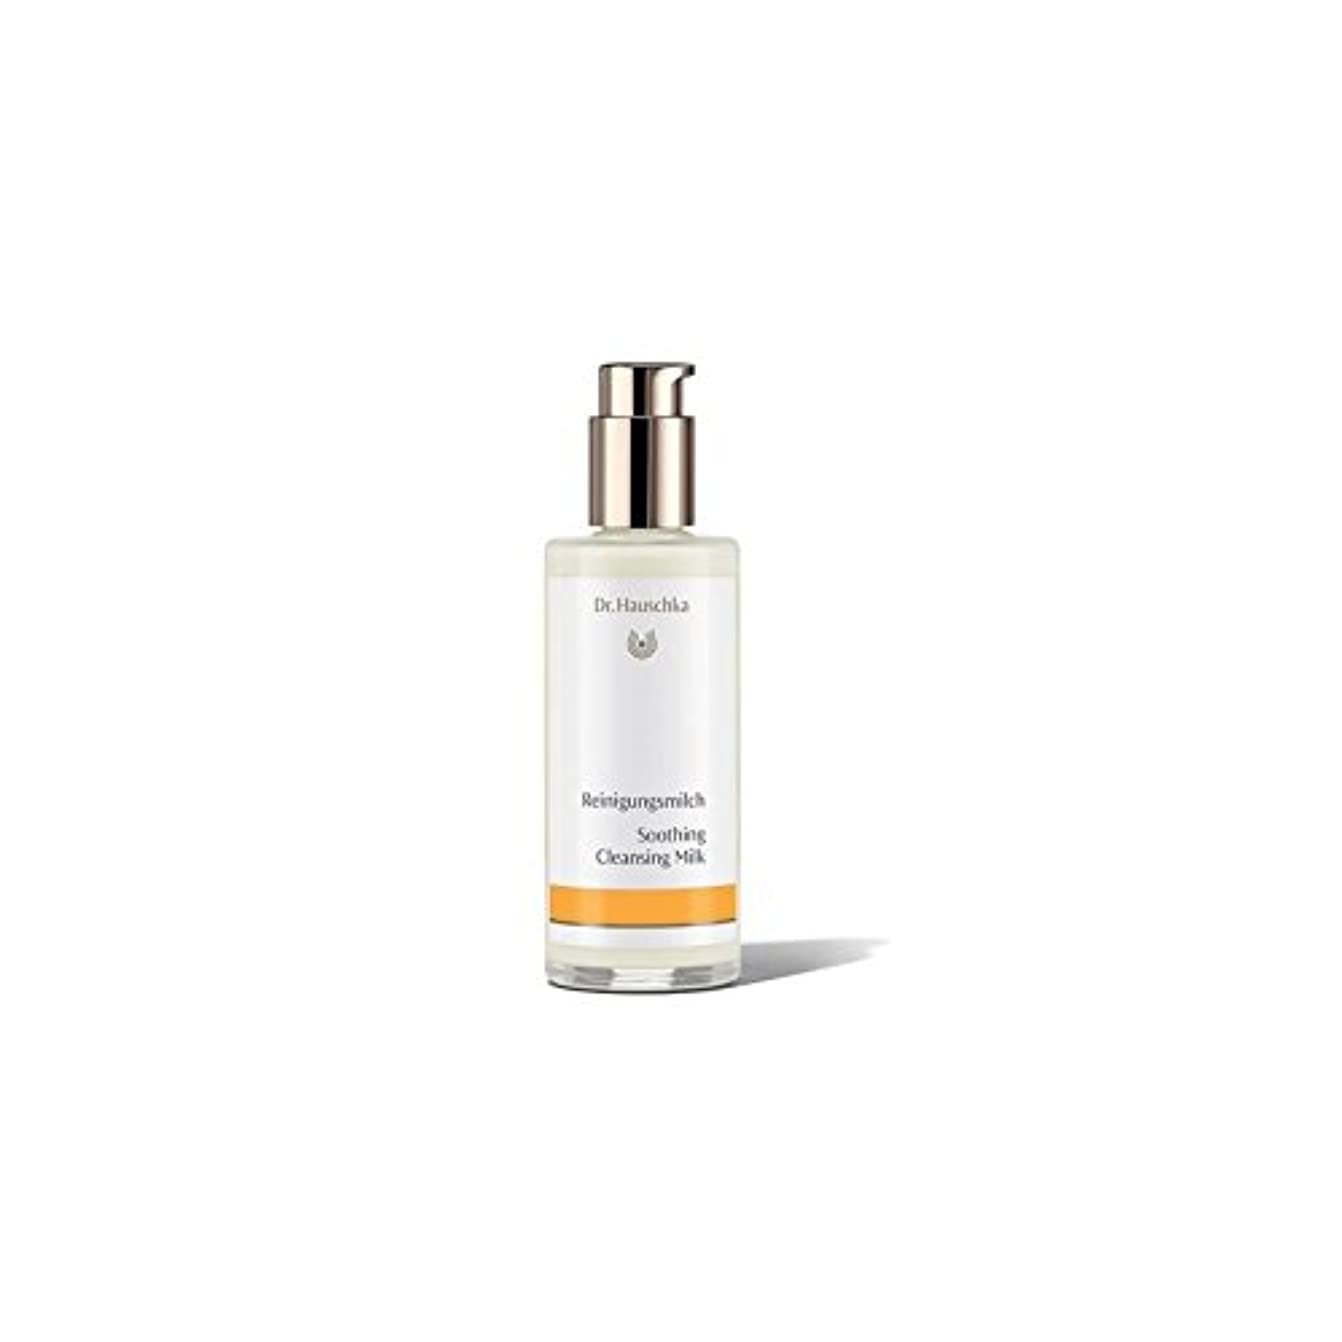 Dr. Hauschka Soothing Cleansing Milk 145ml (Pack of 6) - ハウシュカなだめるクレンジングミルク145ミリリットル x6 [並行輸入品]